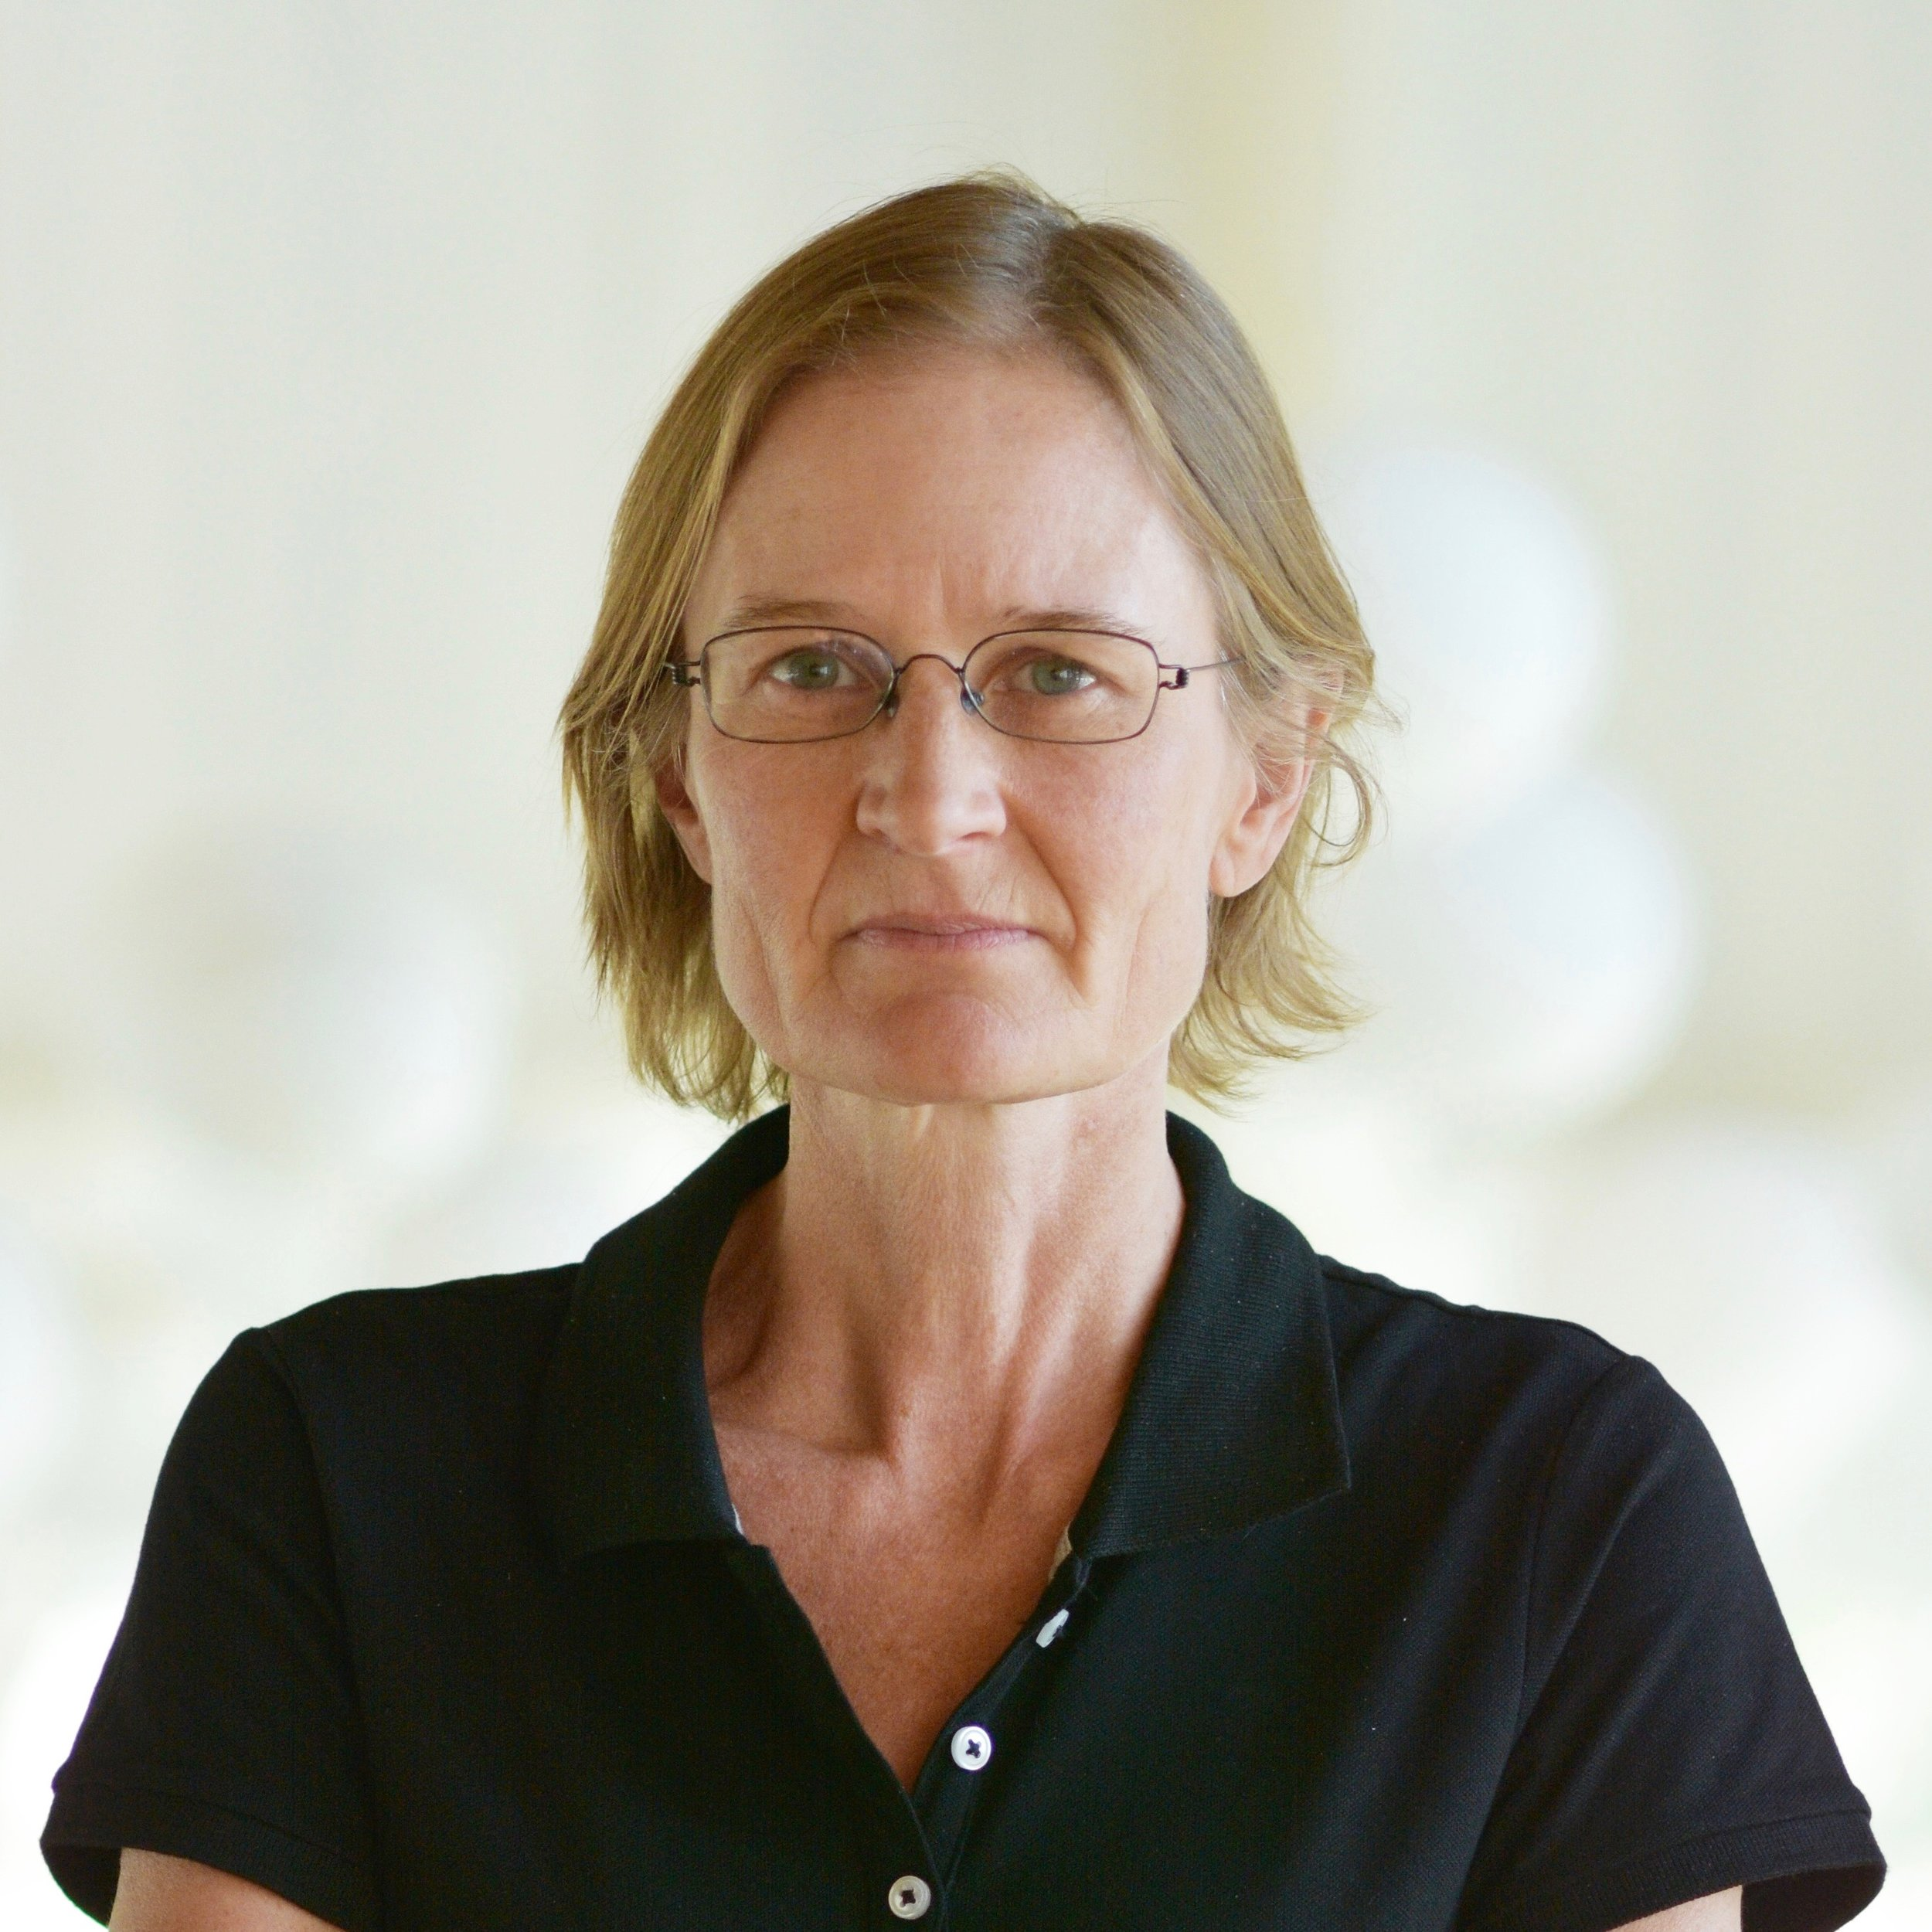 Mette Rosenkilde - Co-founderMedical doctor with 30 years of experience in receptor pharmacology.